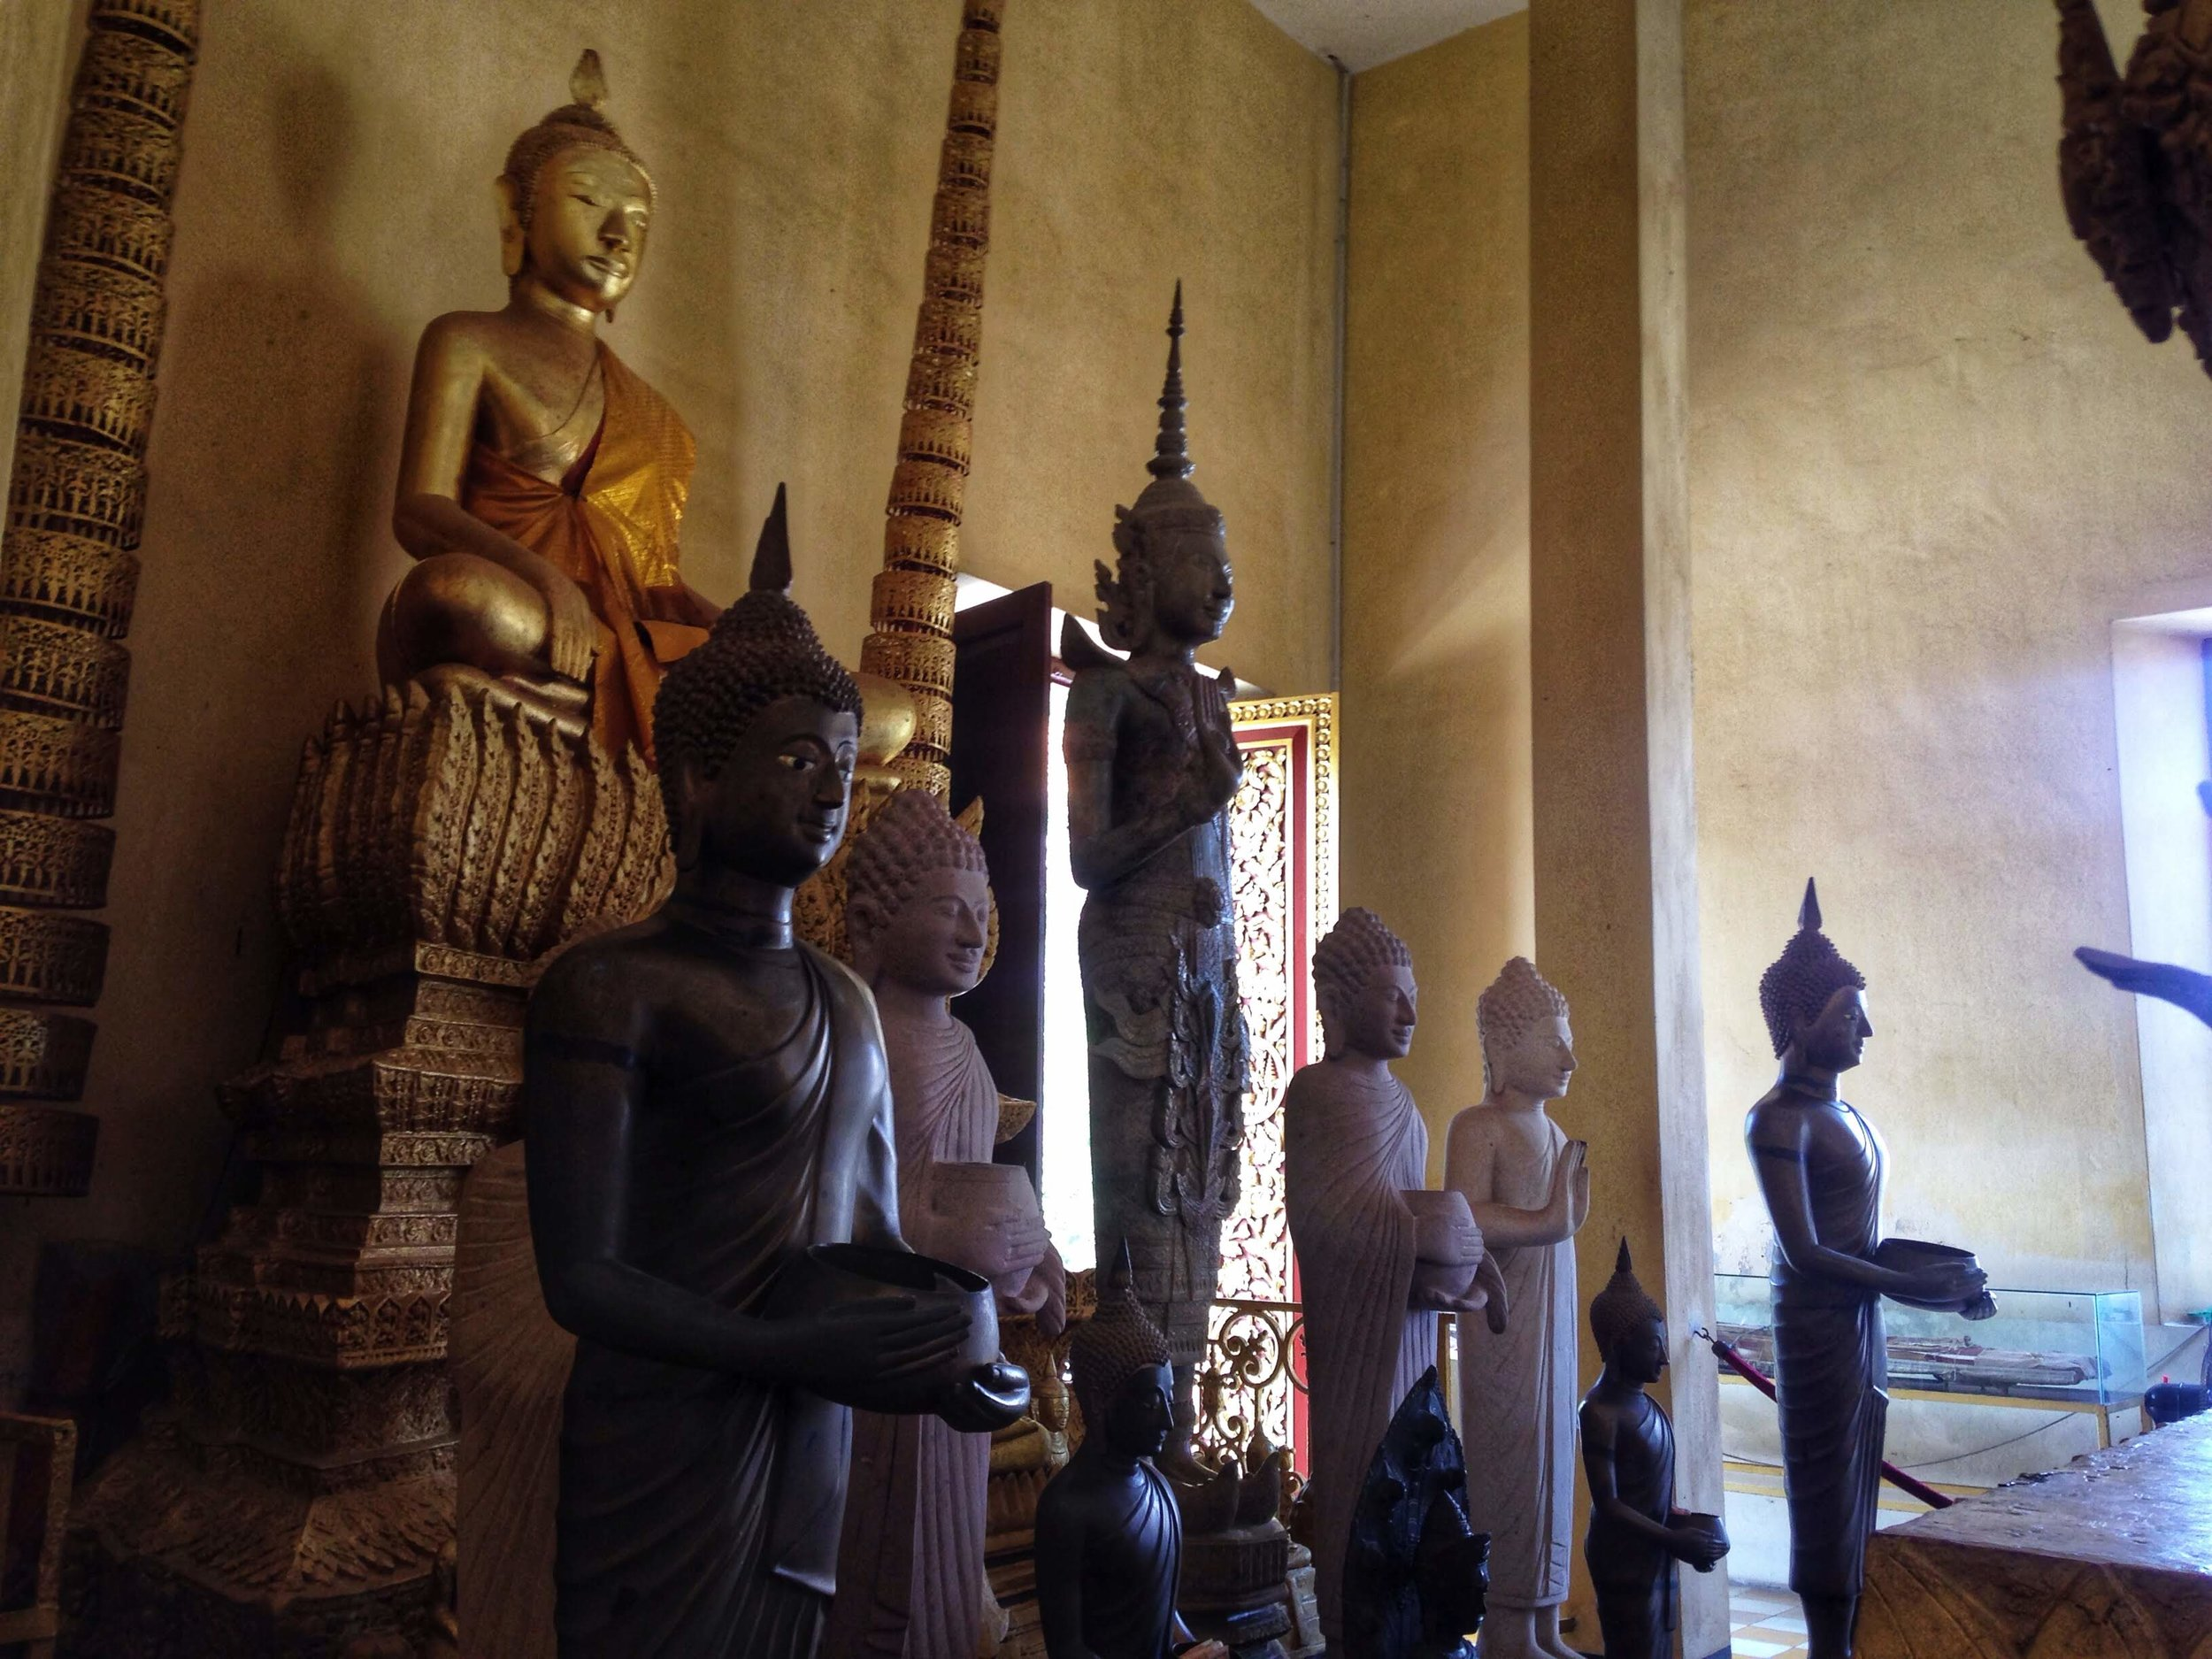 Buddha statues at one of the many shrines at the Royal Palace.